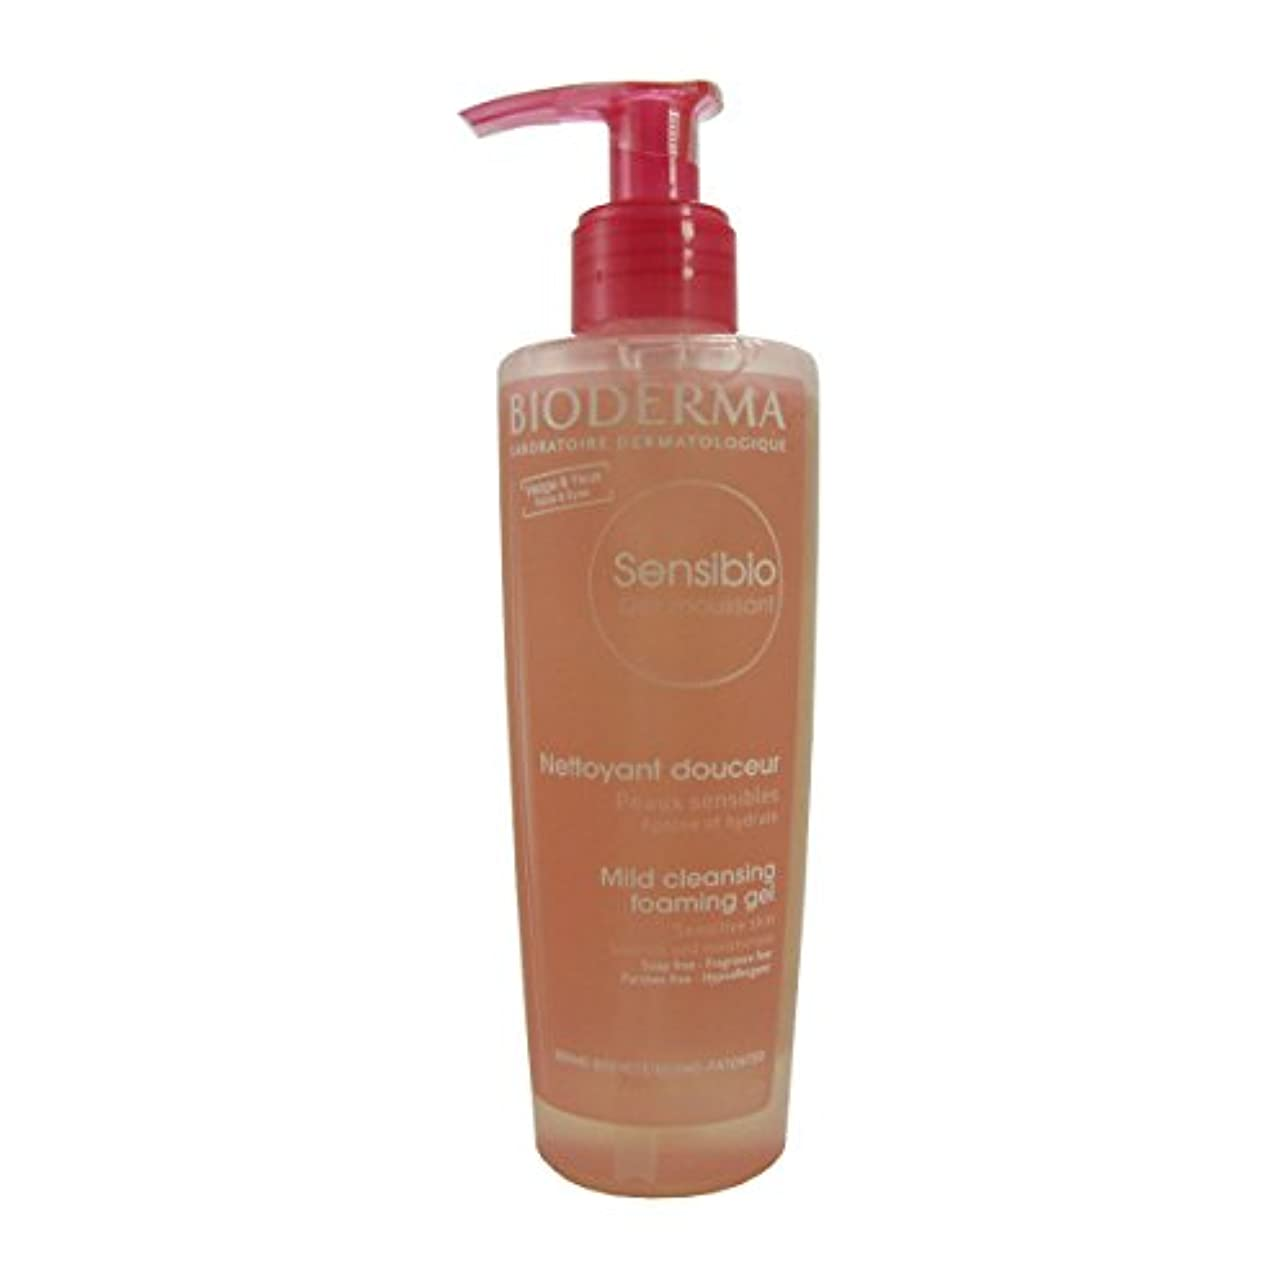 スポンサー賃金逮捕Bioderma - Sensibio Mild Cleansing Foaming Gel [並行輸入品]